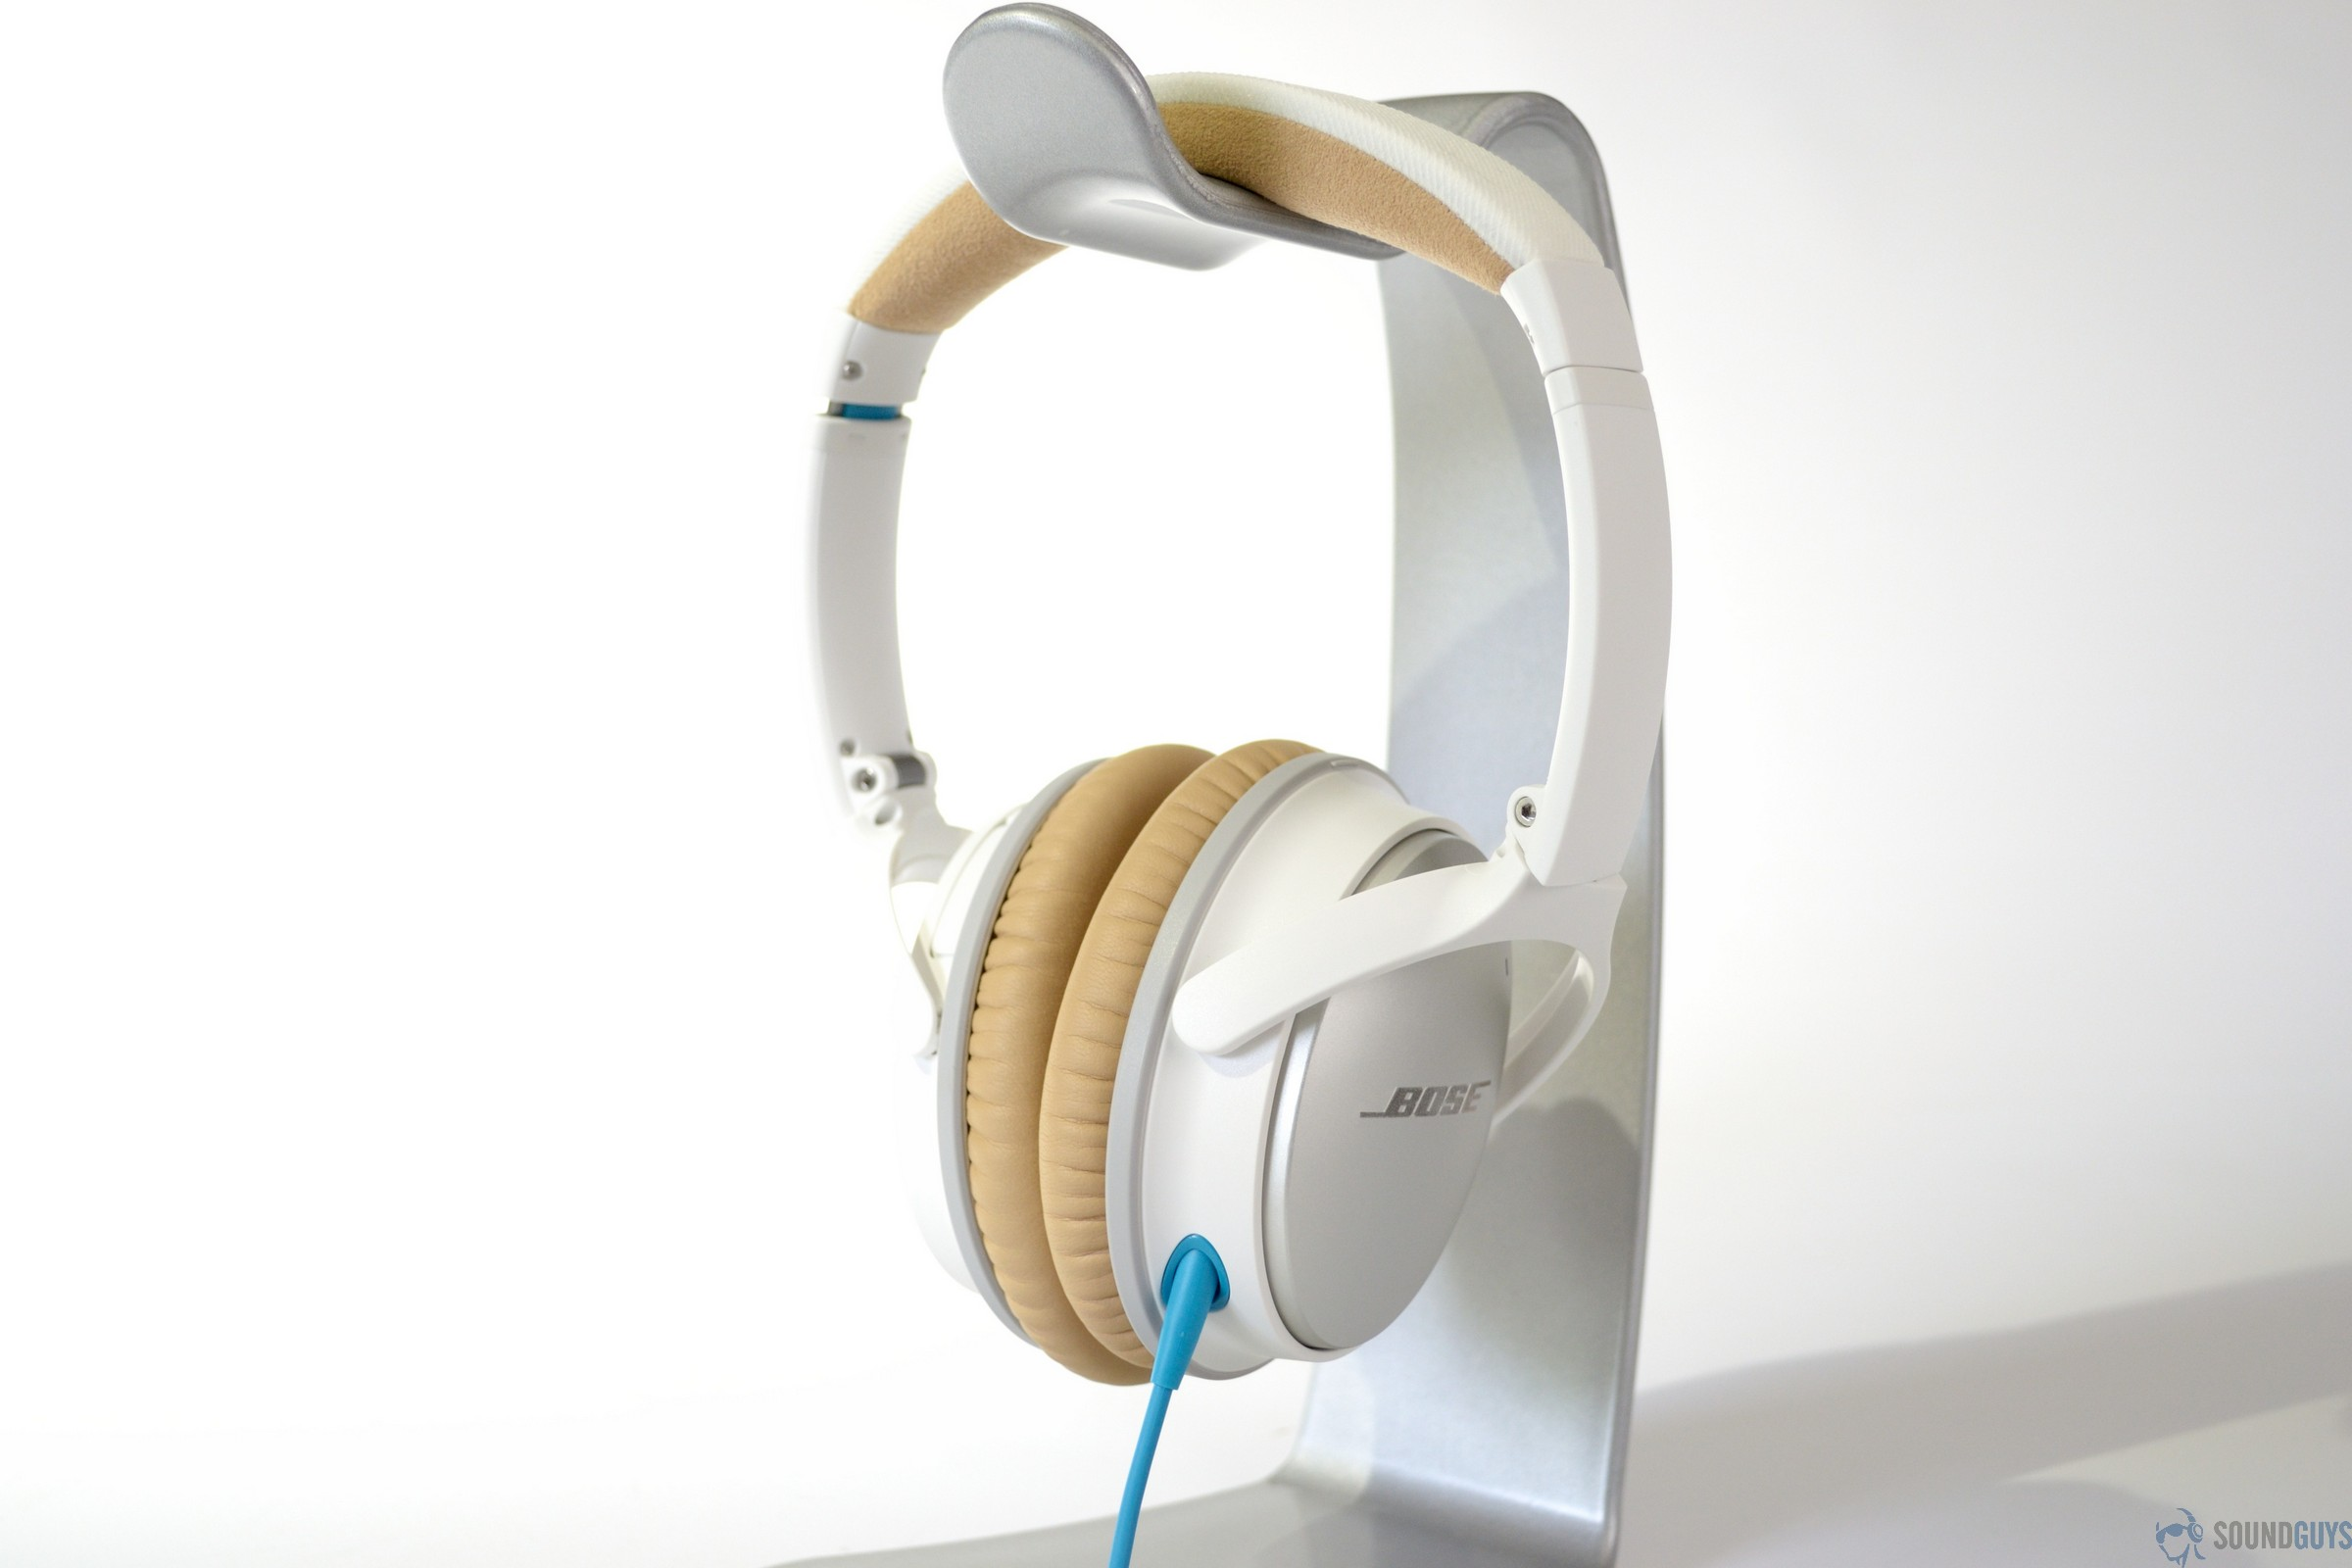 521196fdbe1 Pictured are the Bose QC25 headphones on a headphone stand.